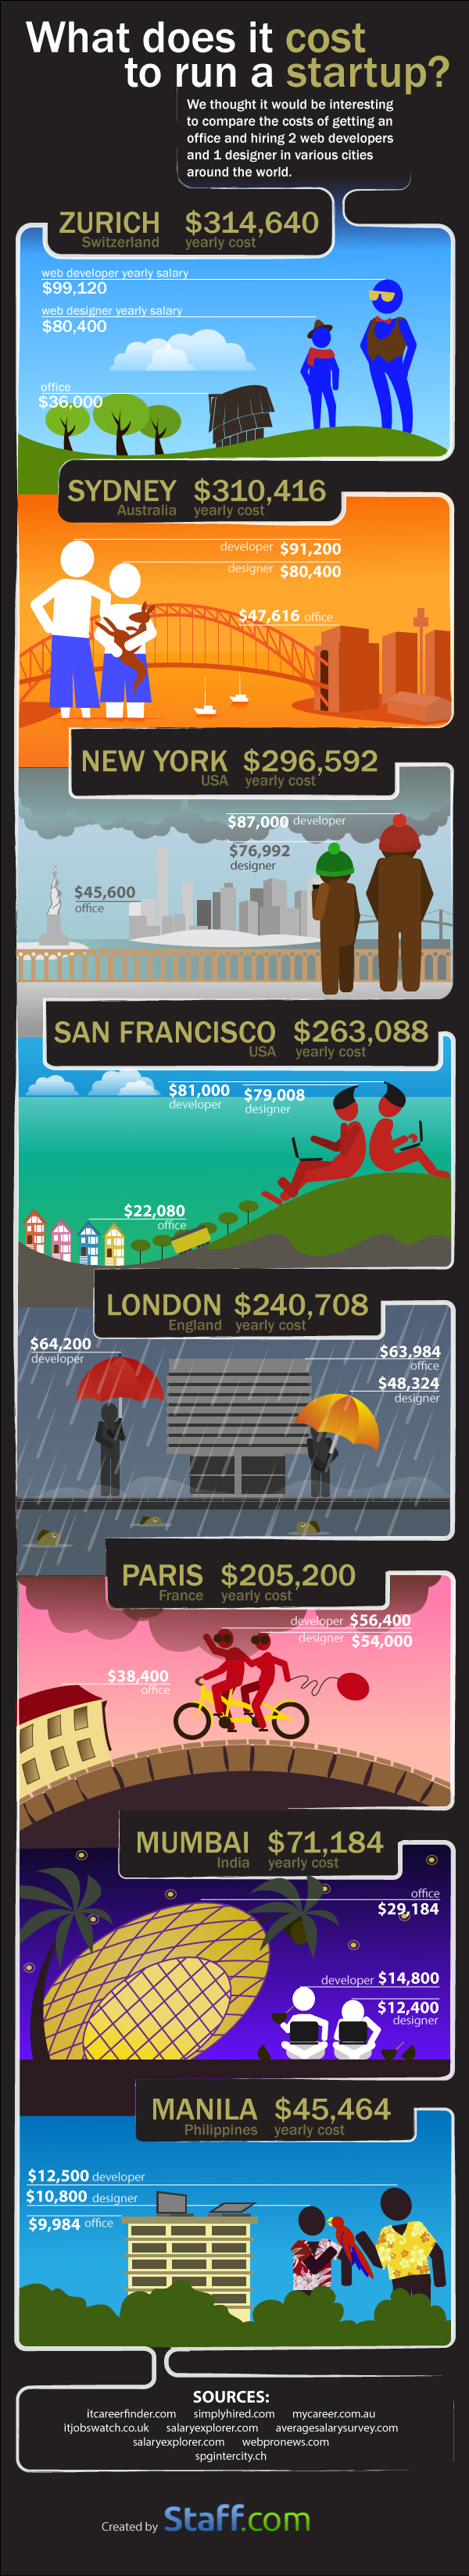 The Cost Of Running A Startup In 8 Different Cities - Infographic